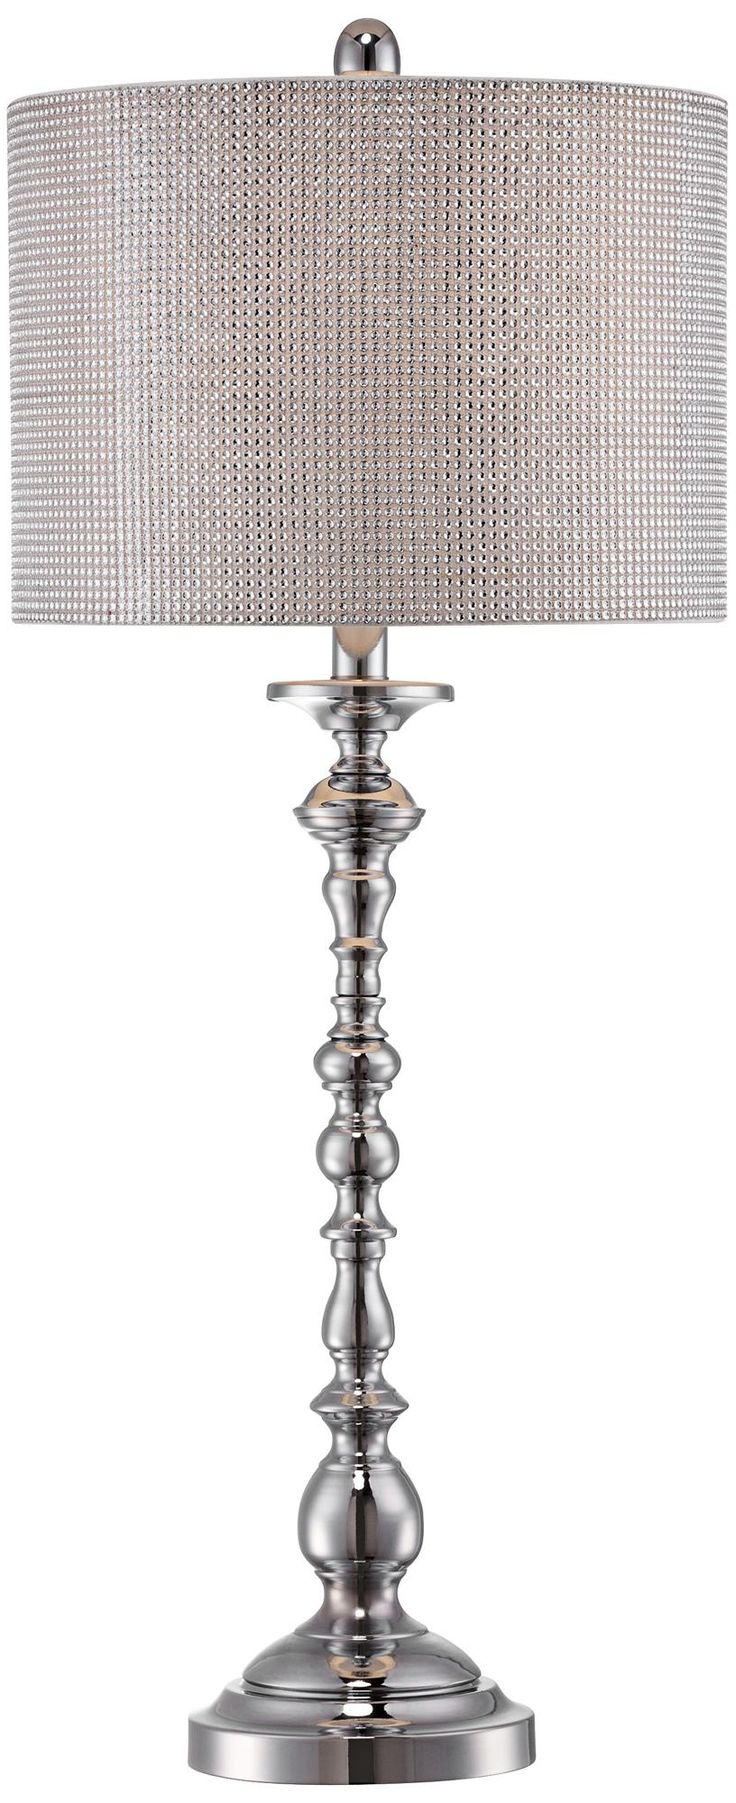 Contemporary Stacked Sphere Chrome Buffet L& with Faux Diamond Shade contemporary table l&s  sc 1 st  Pinterest & 82 best Lighting images on Pinterest | Industrial lighting ... azcodes.com